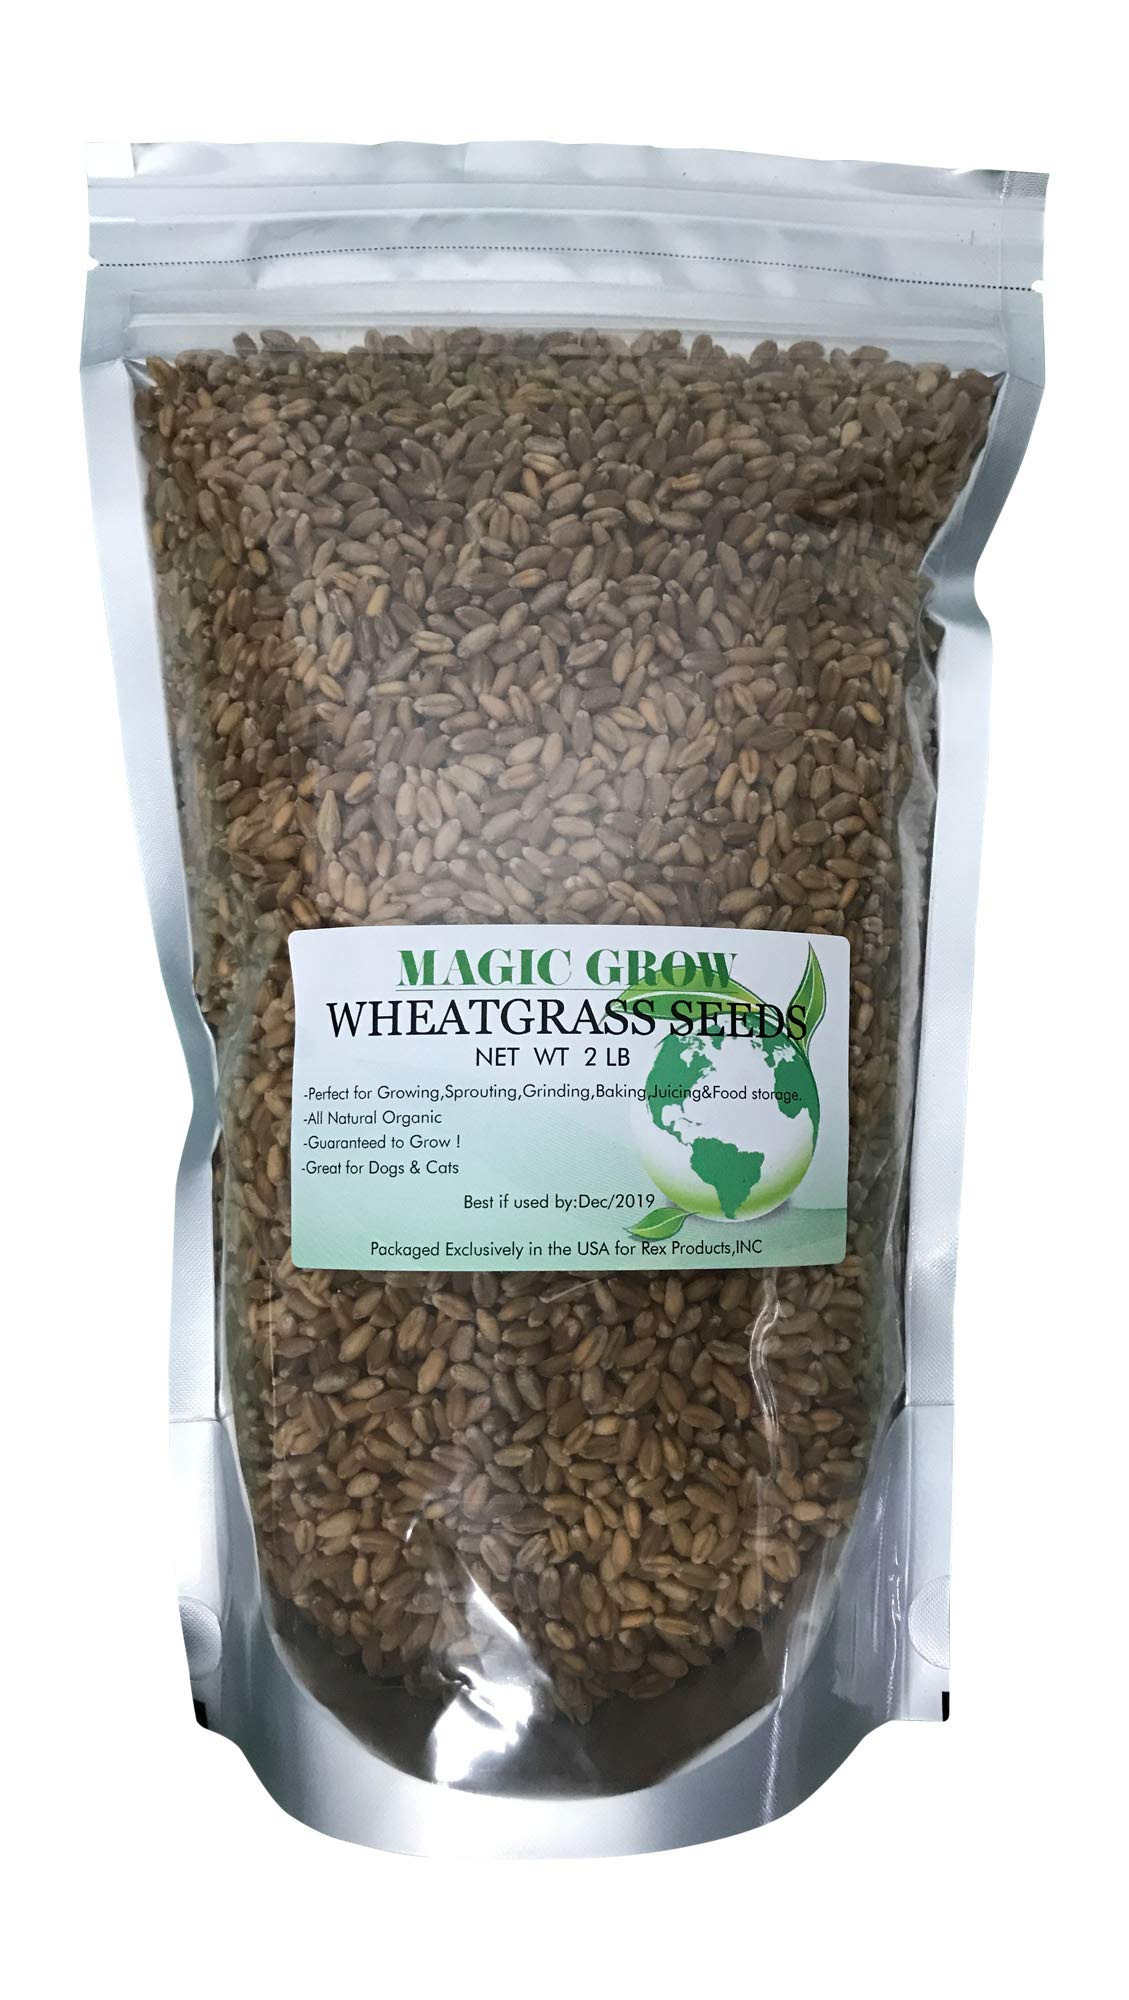 Non-GMO,Magic Grow Premium Wheatgrass Seed,Hard Red Winter (2 LB)